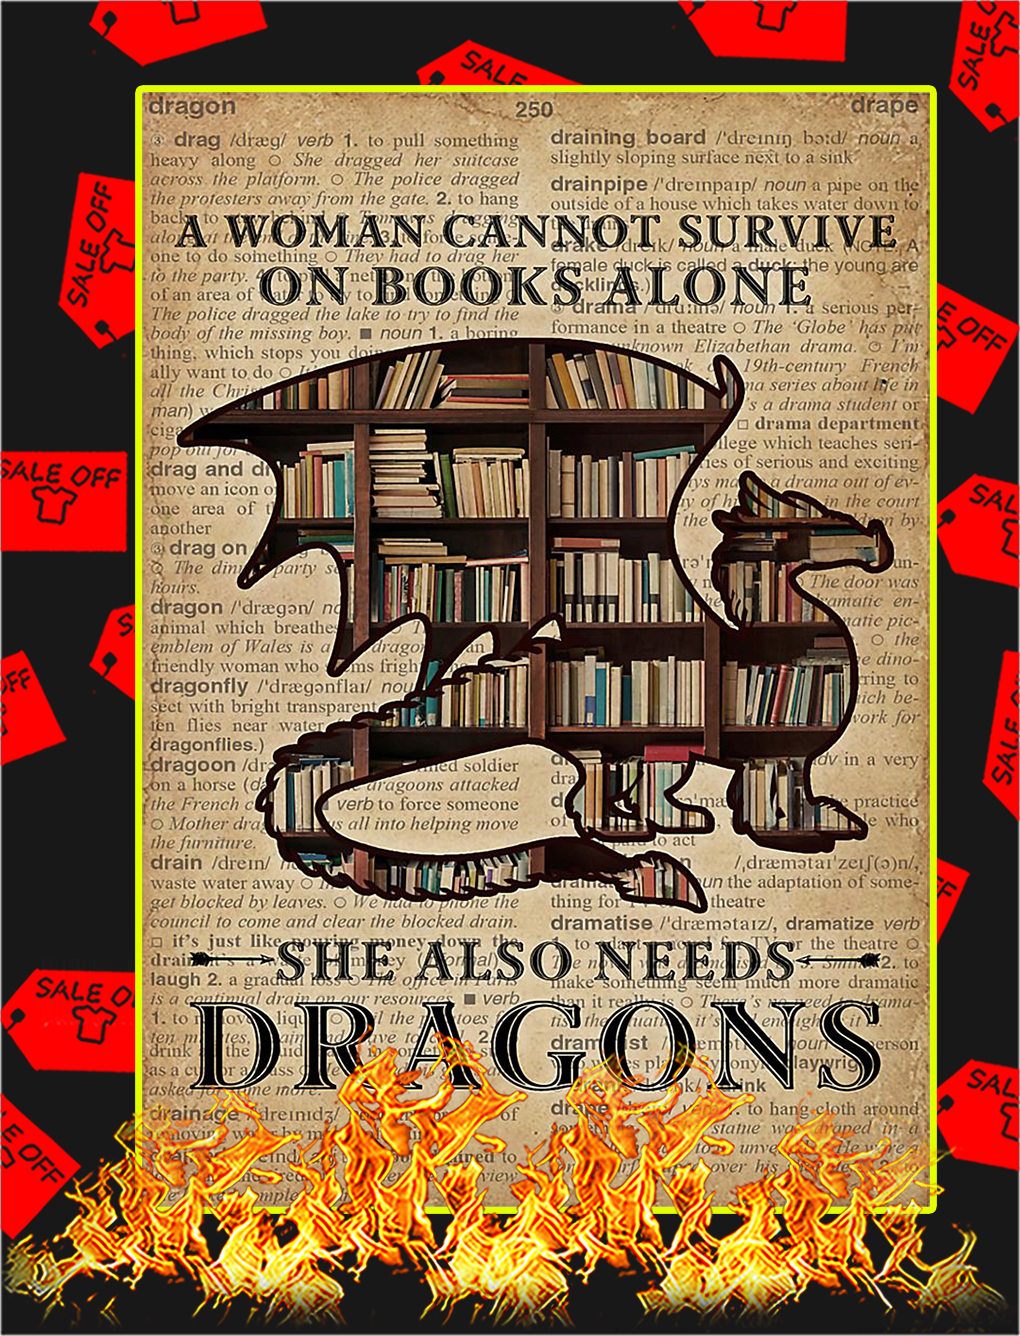 A woman cannot survive on books alone she also needs dragons poster - A3